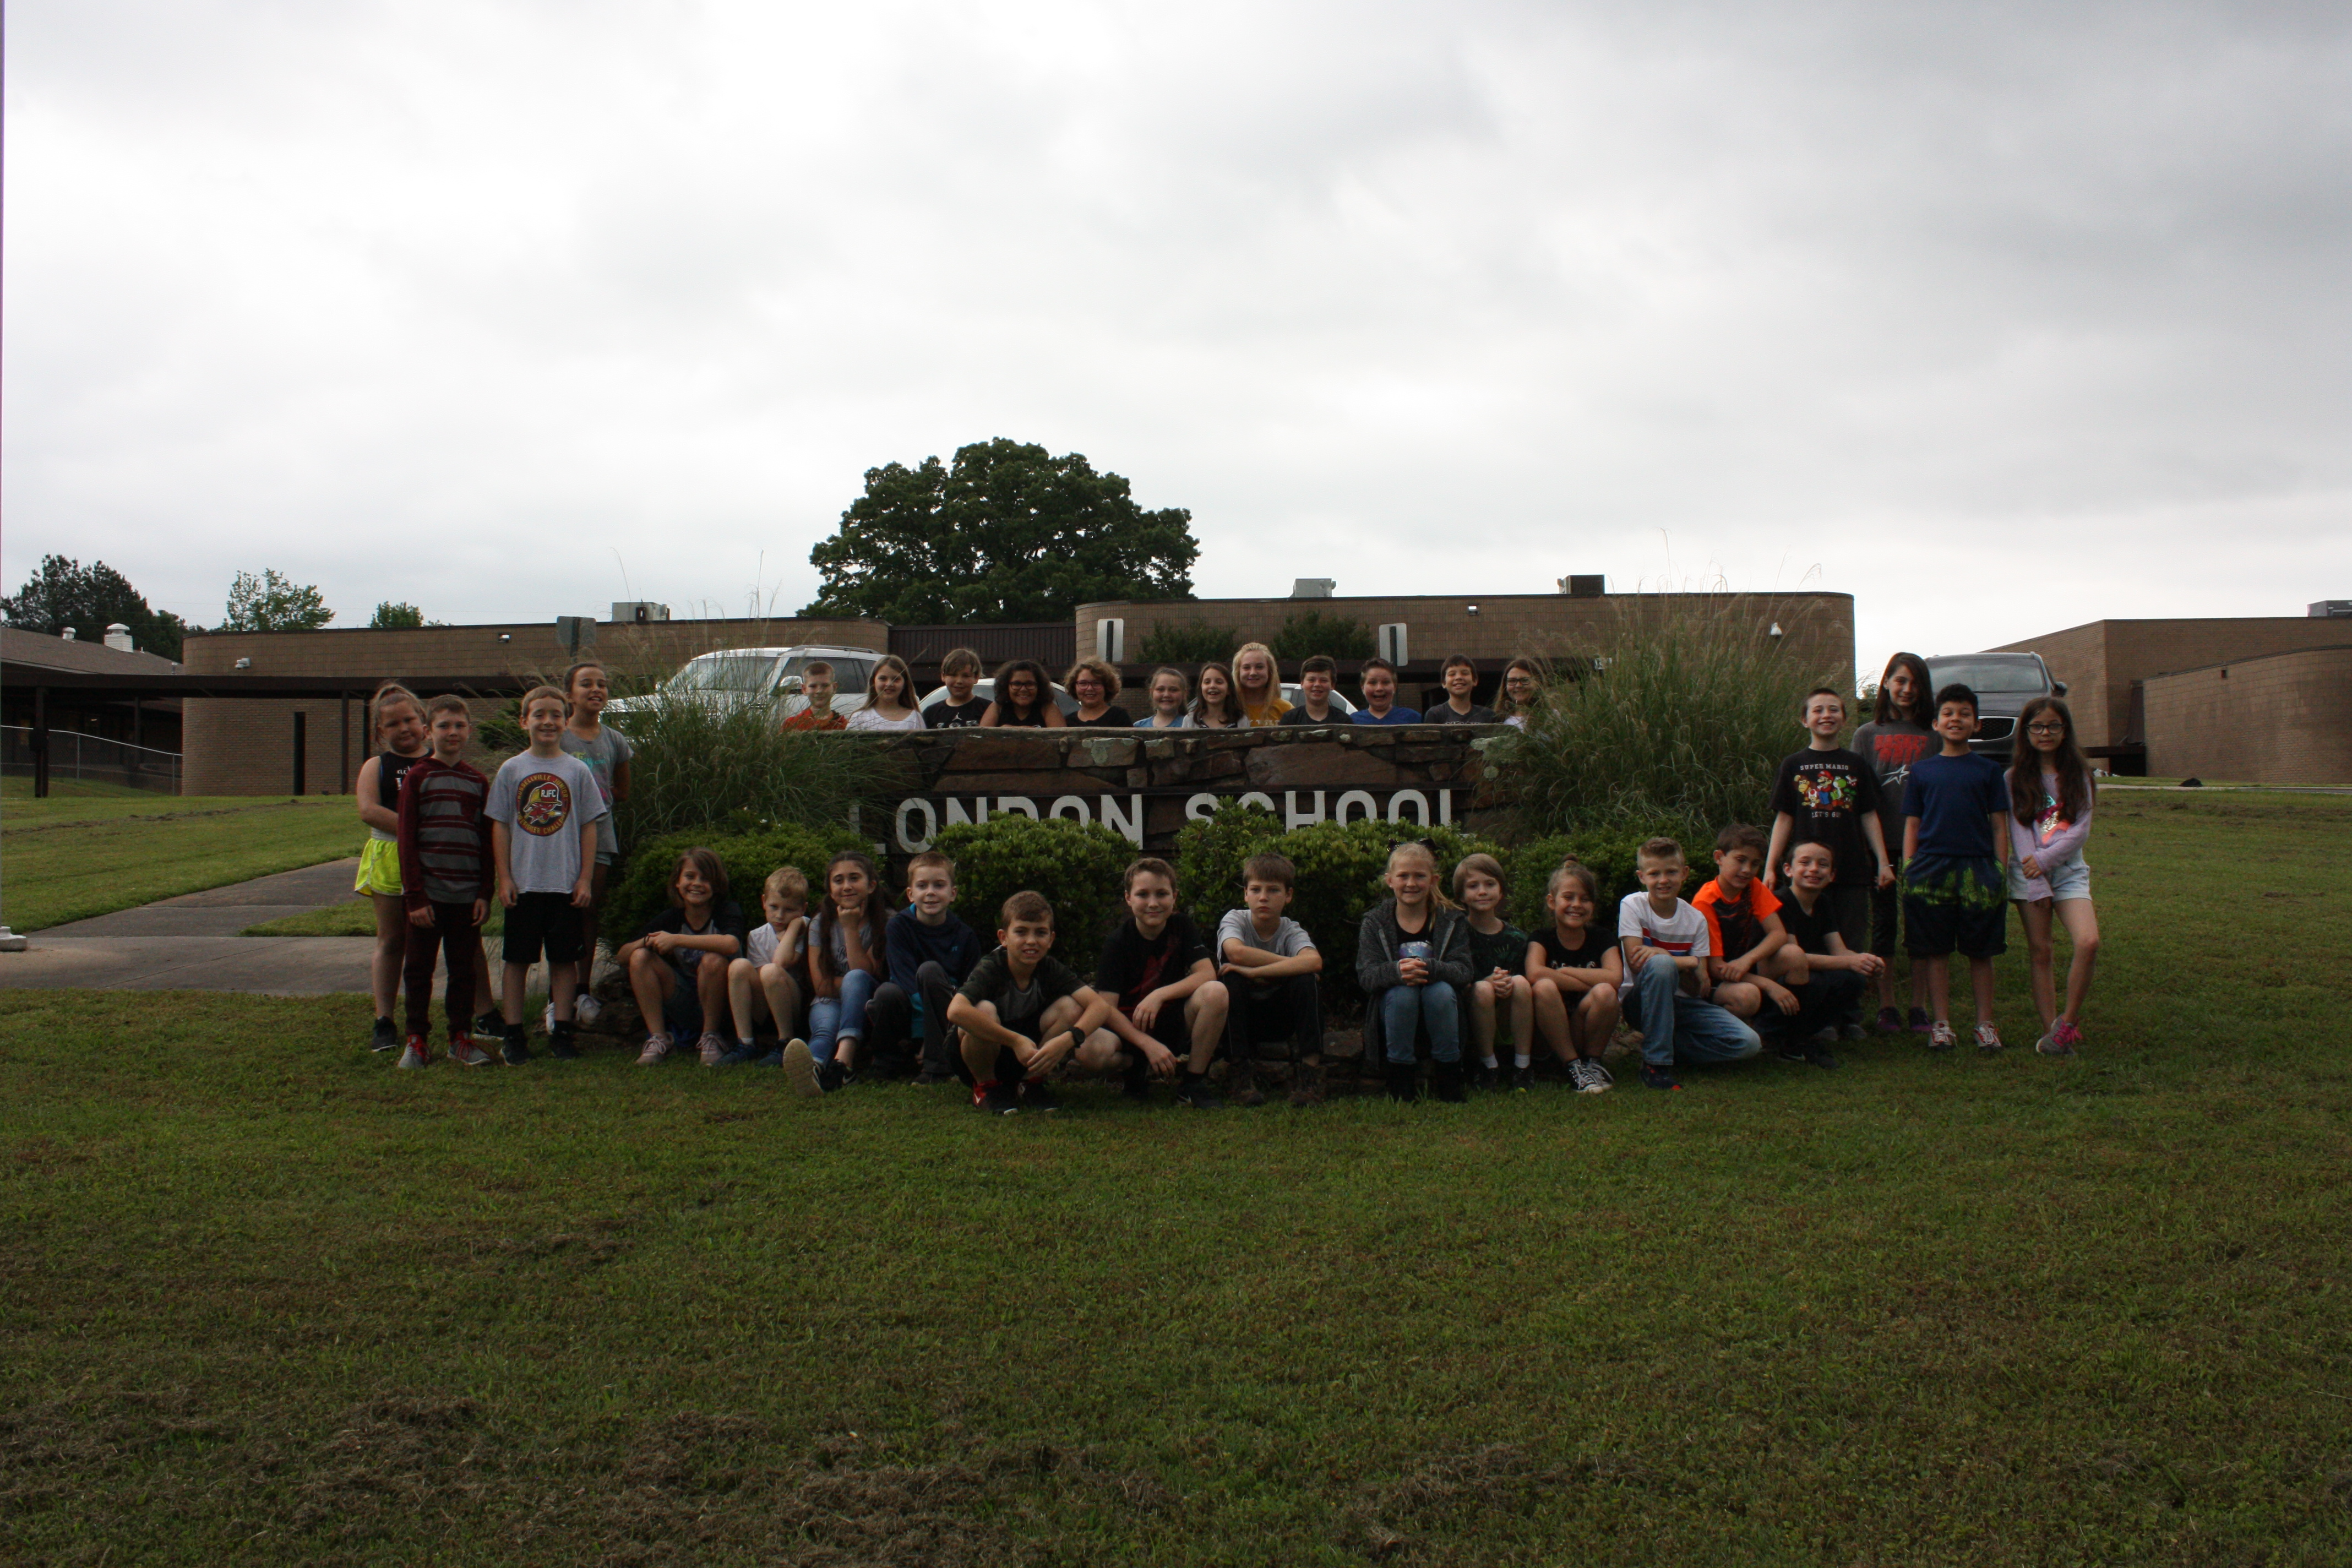 Photo of the students posing outside the school's building